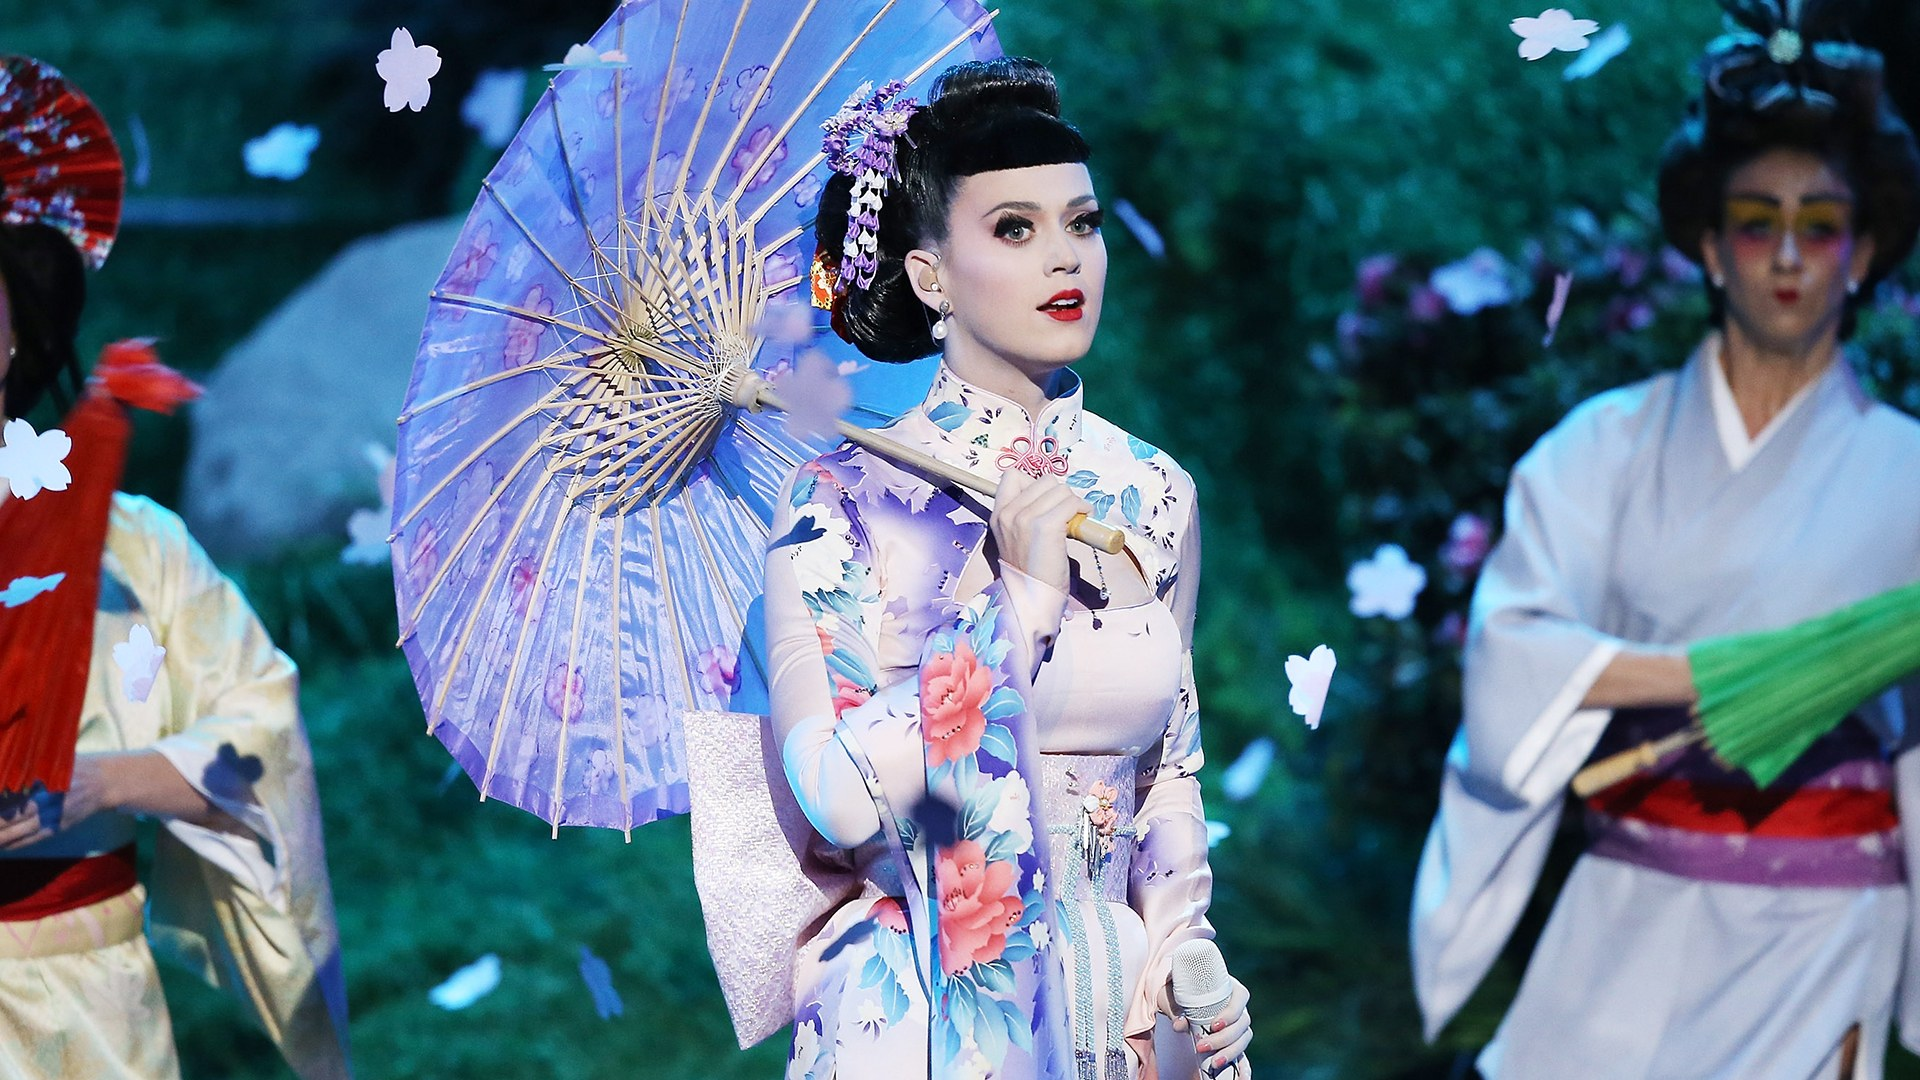 katy perry cultural appropriation